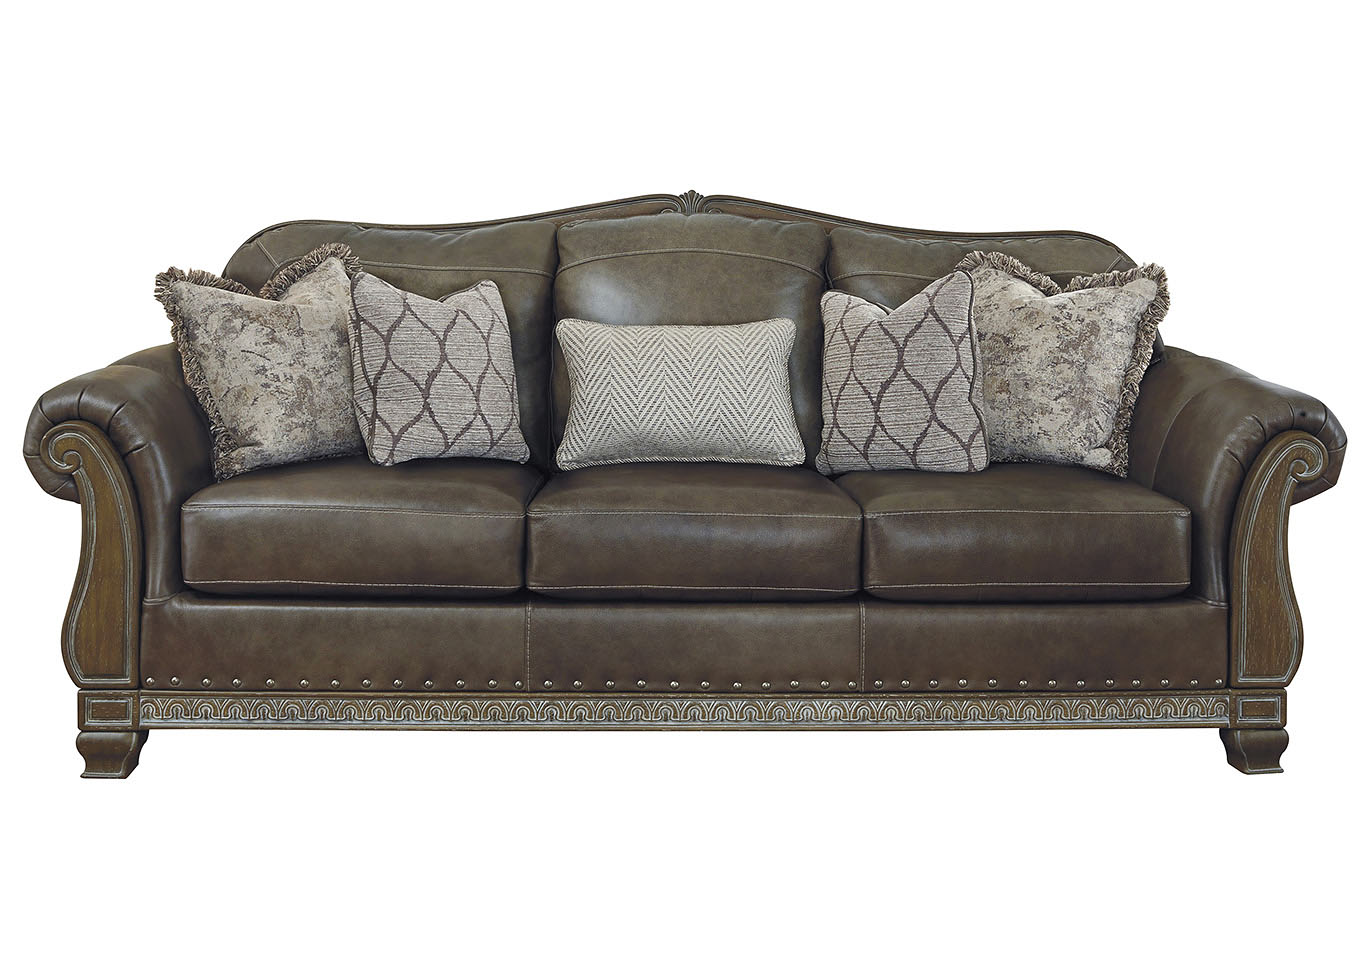 Malacara Quarry Sofa,Signature Design By Ashley